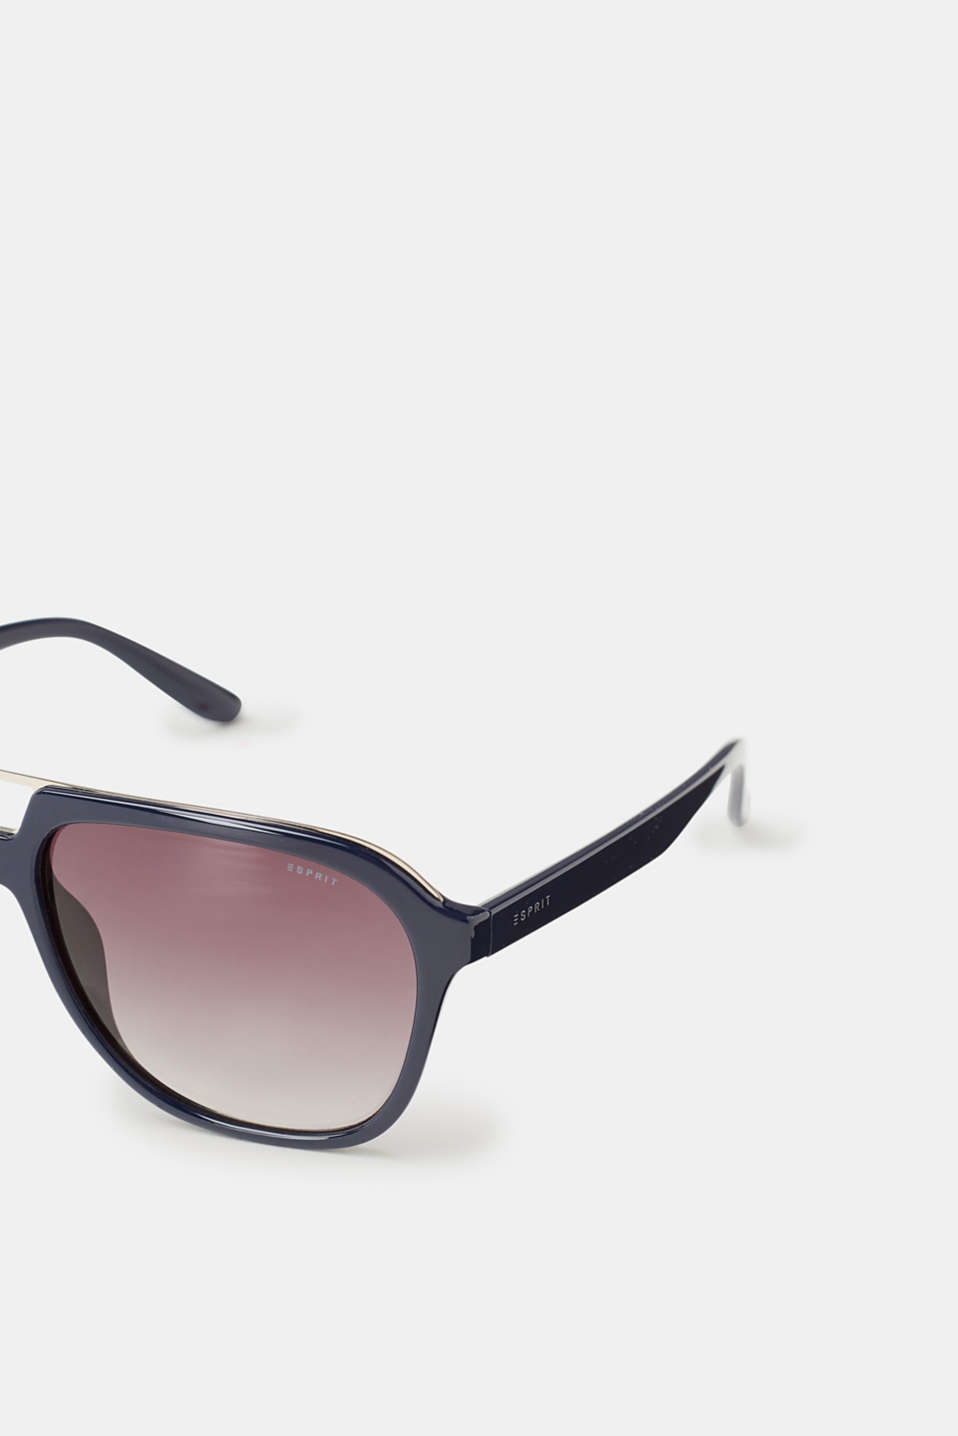 Unisex sunglasses with metal detail